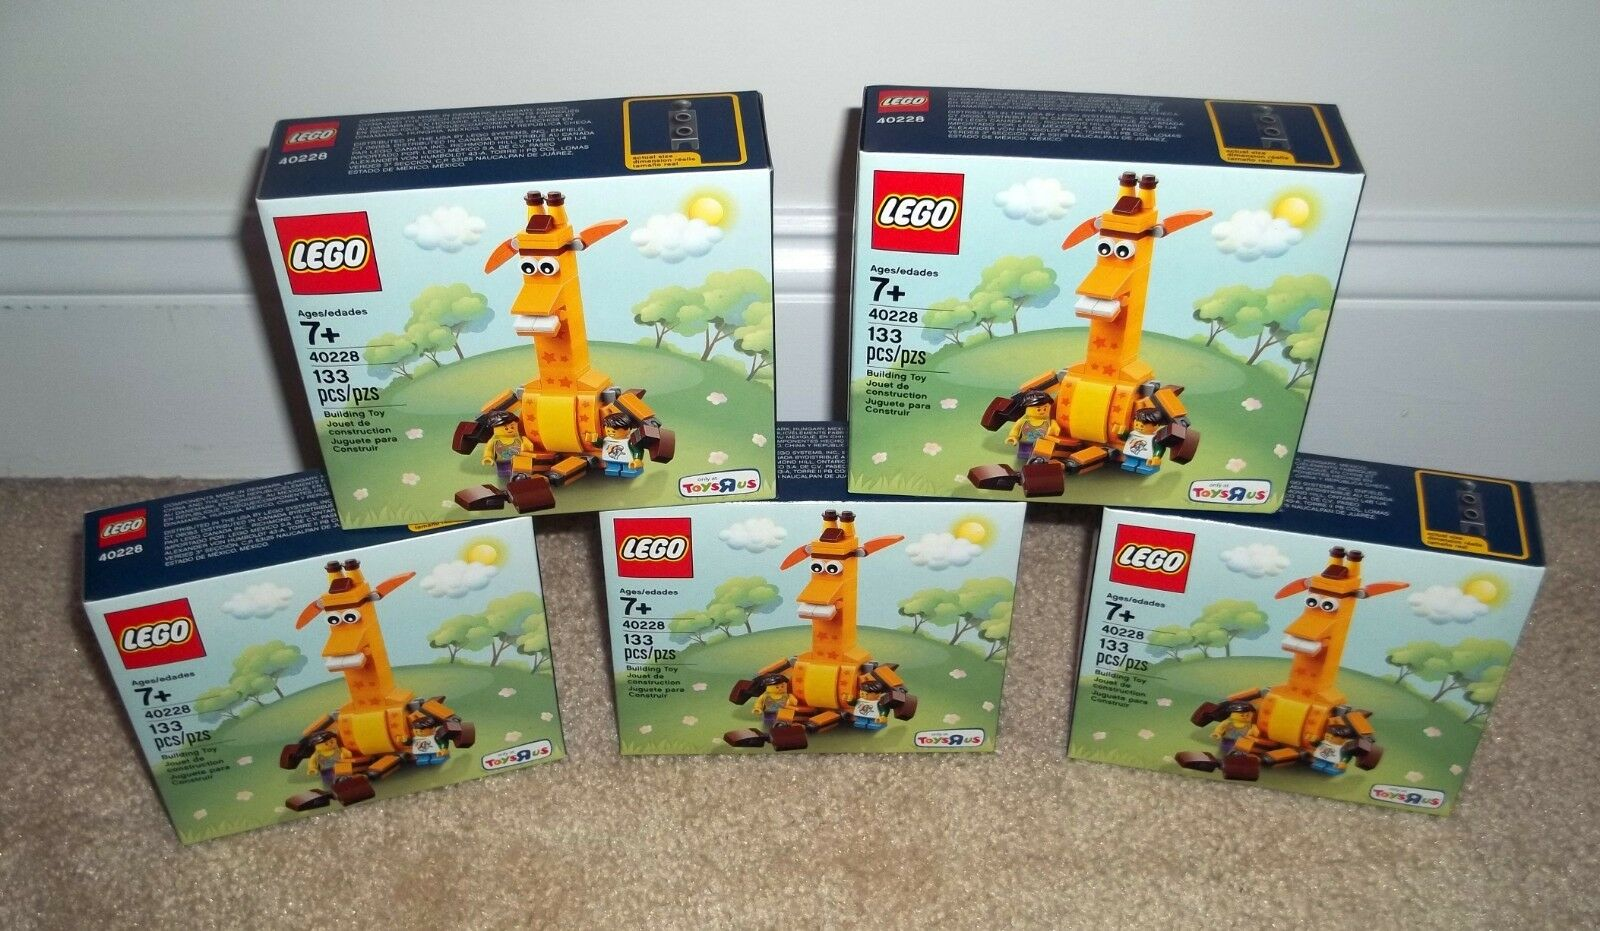 Lego Toys R Us Exclusive 40228 Geoffrey Lot of 5 NEW in Sealed Box Rare